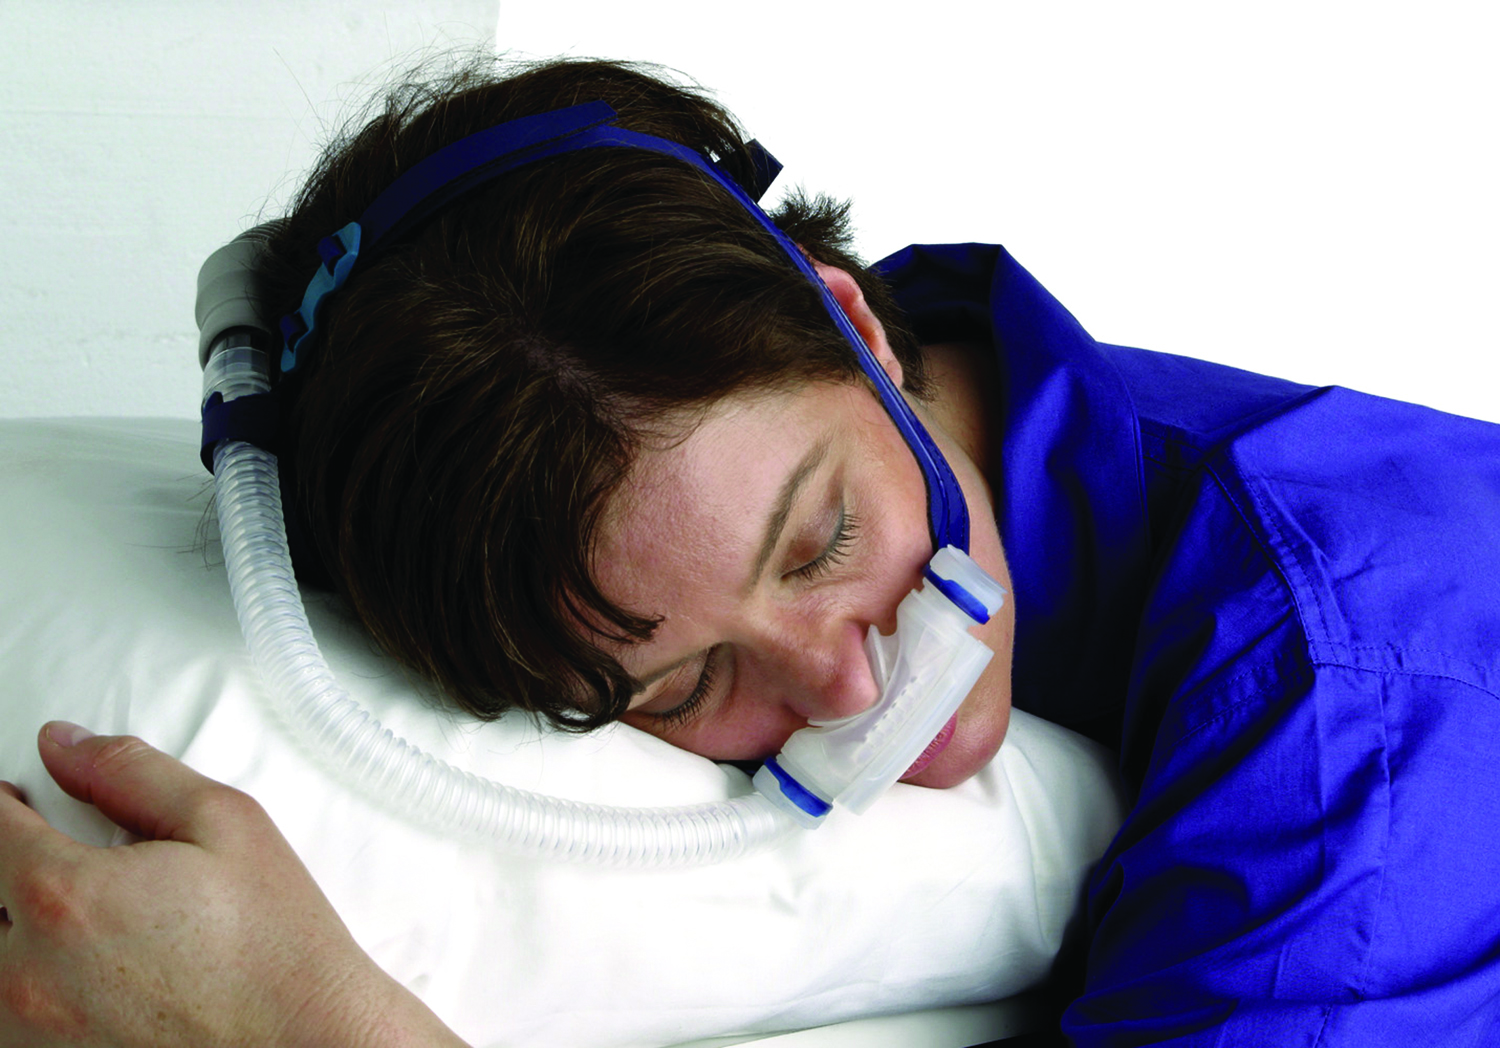 Swift Lt Nasal Pillows Mask System With Headgear